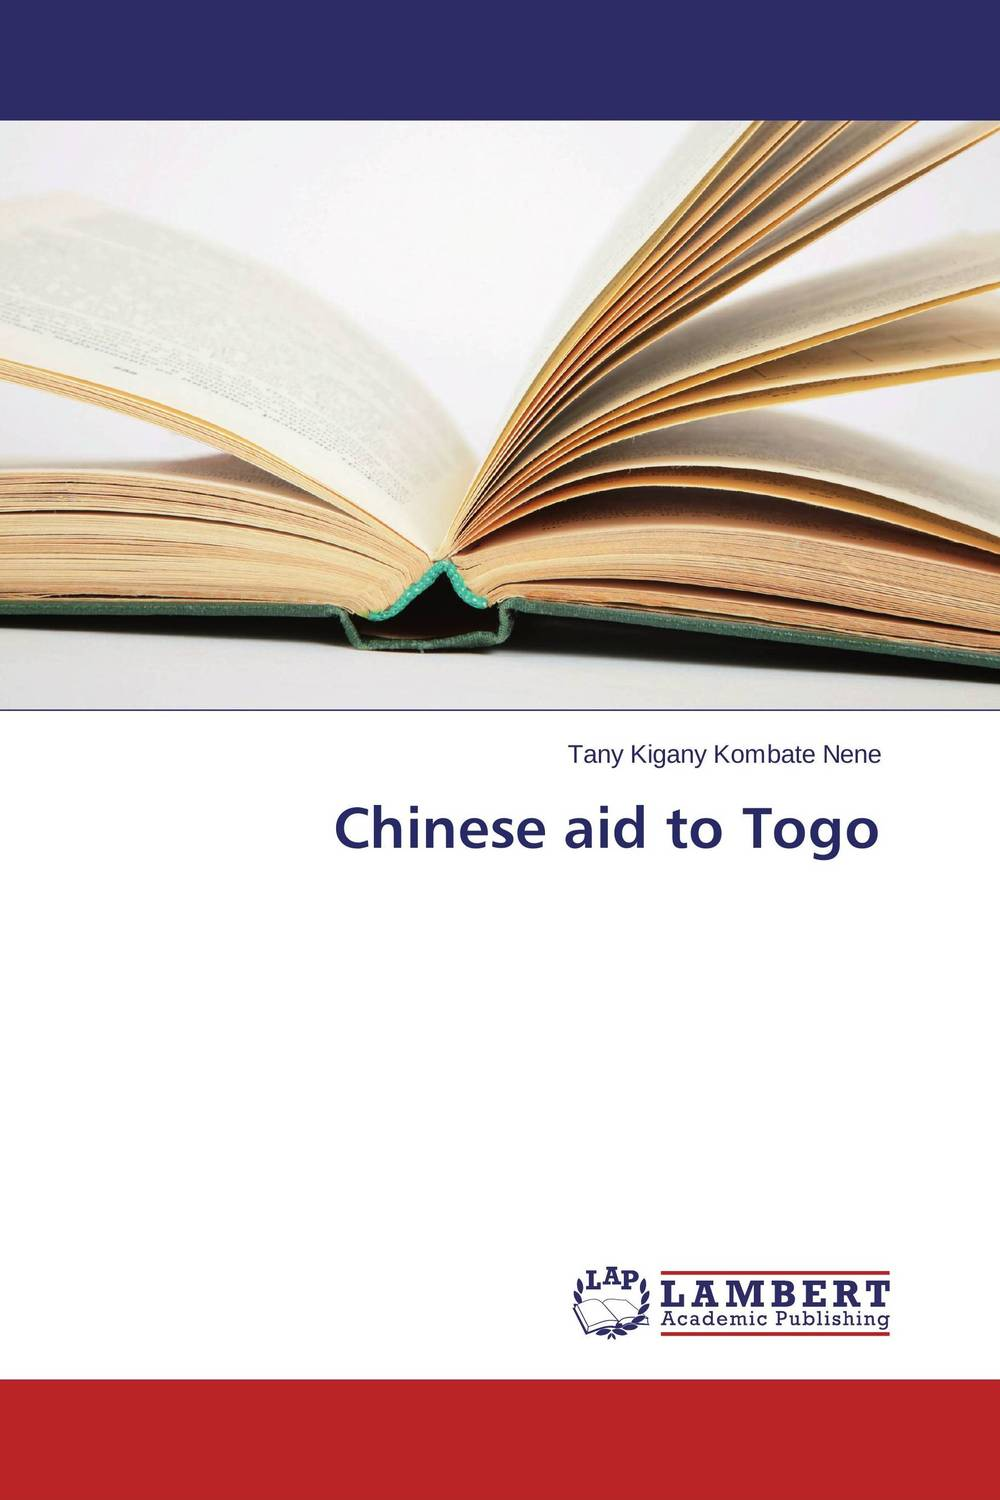 Chinese aid to Togo